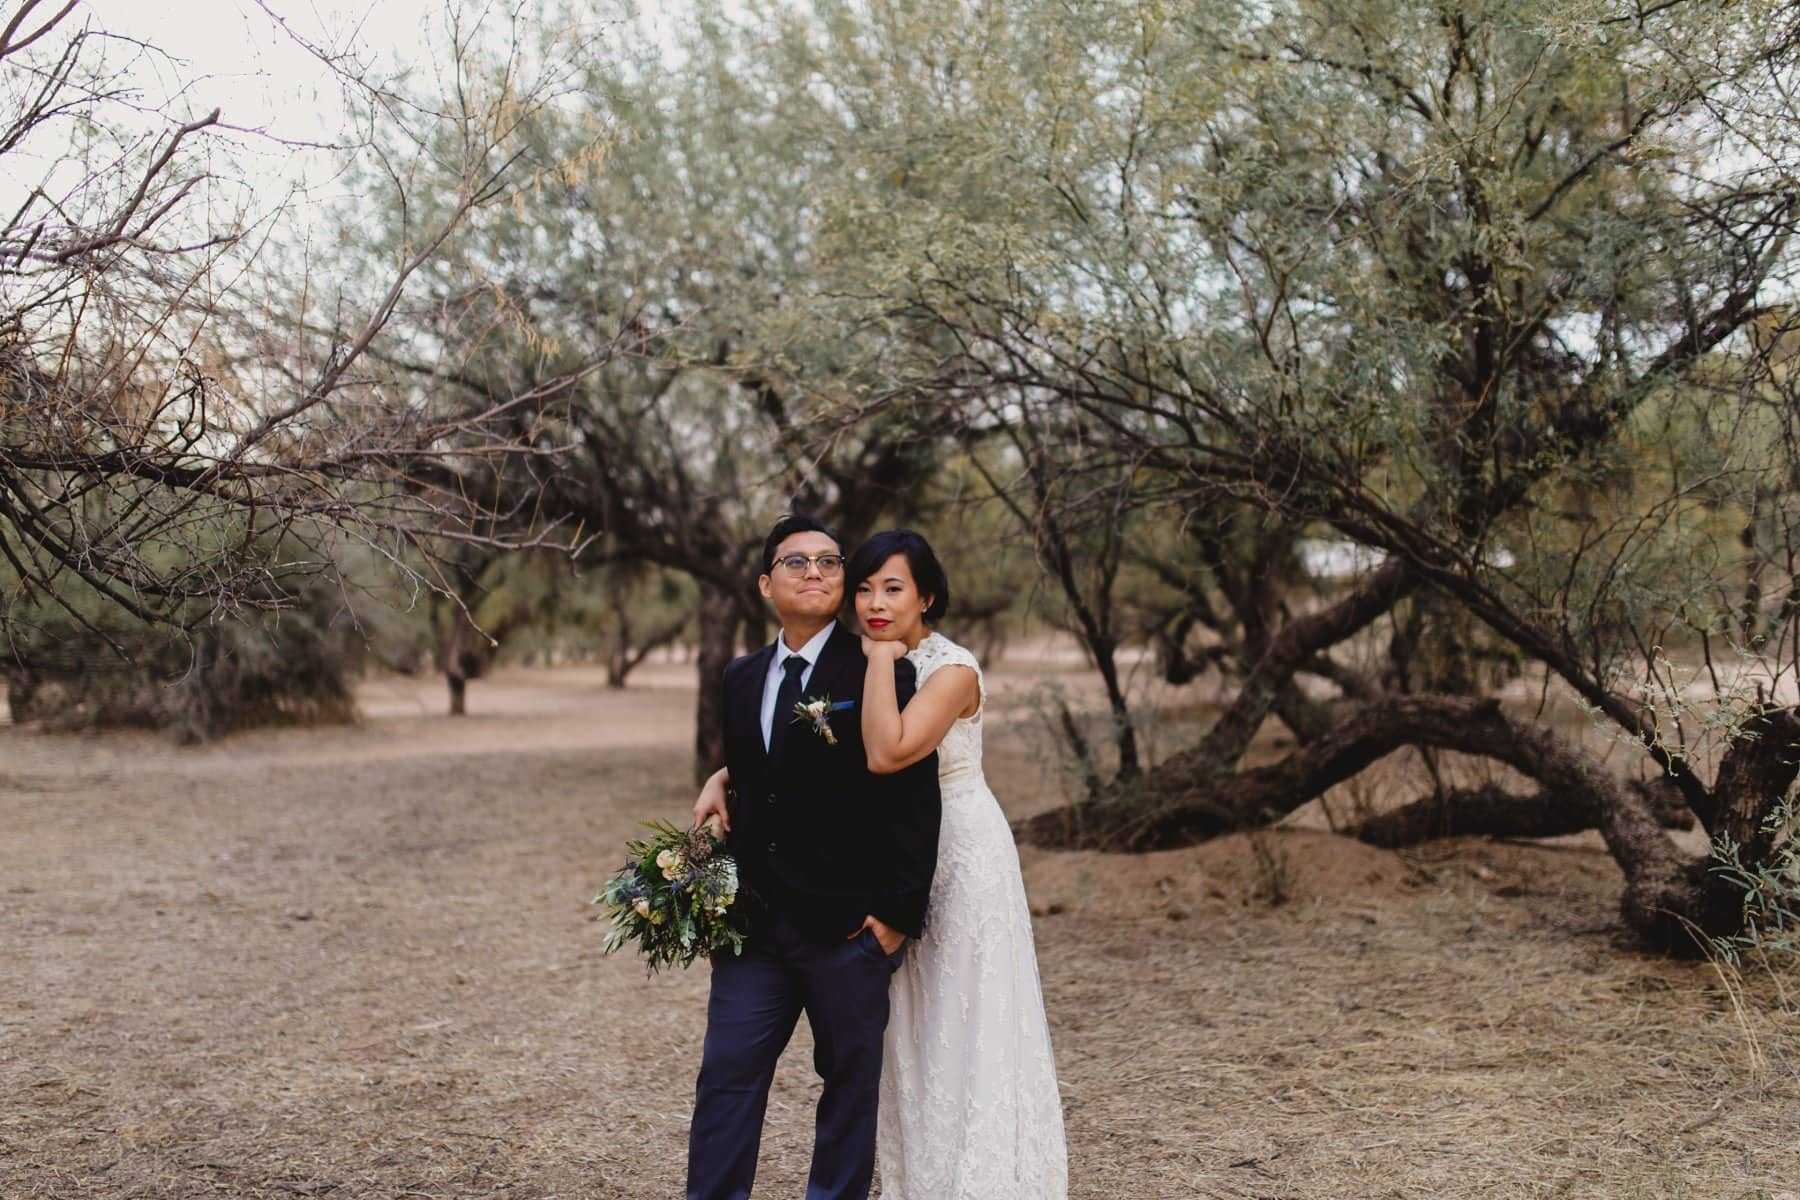 bride & groom photos at Salt River wedding